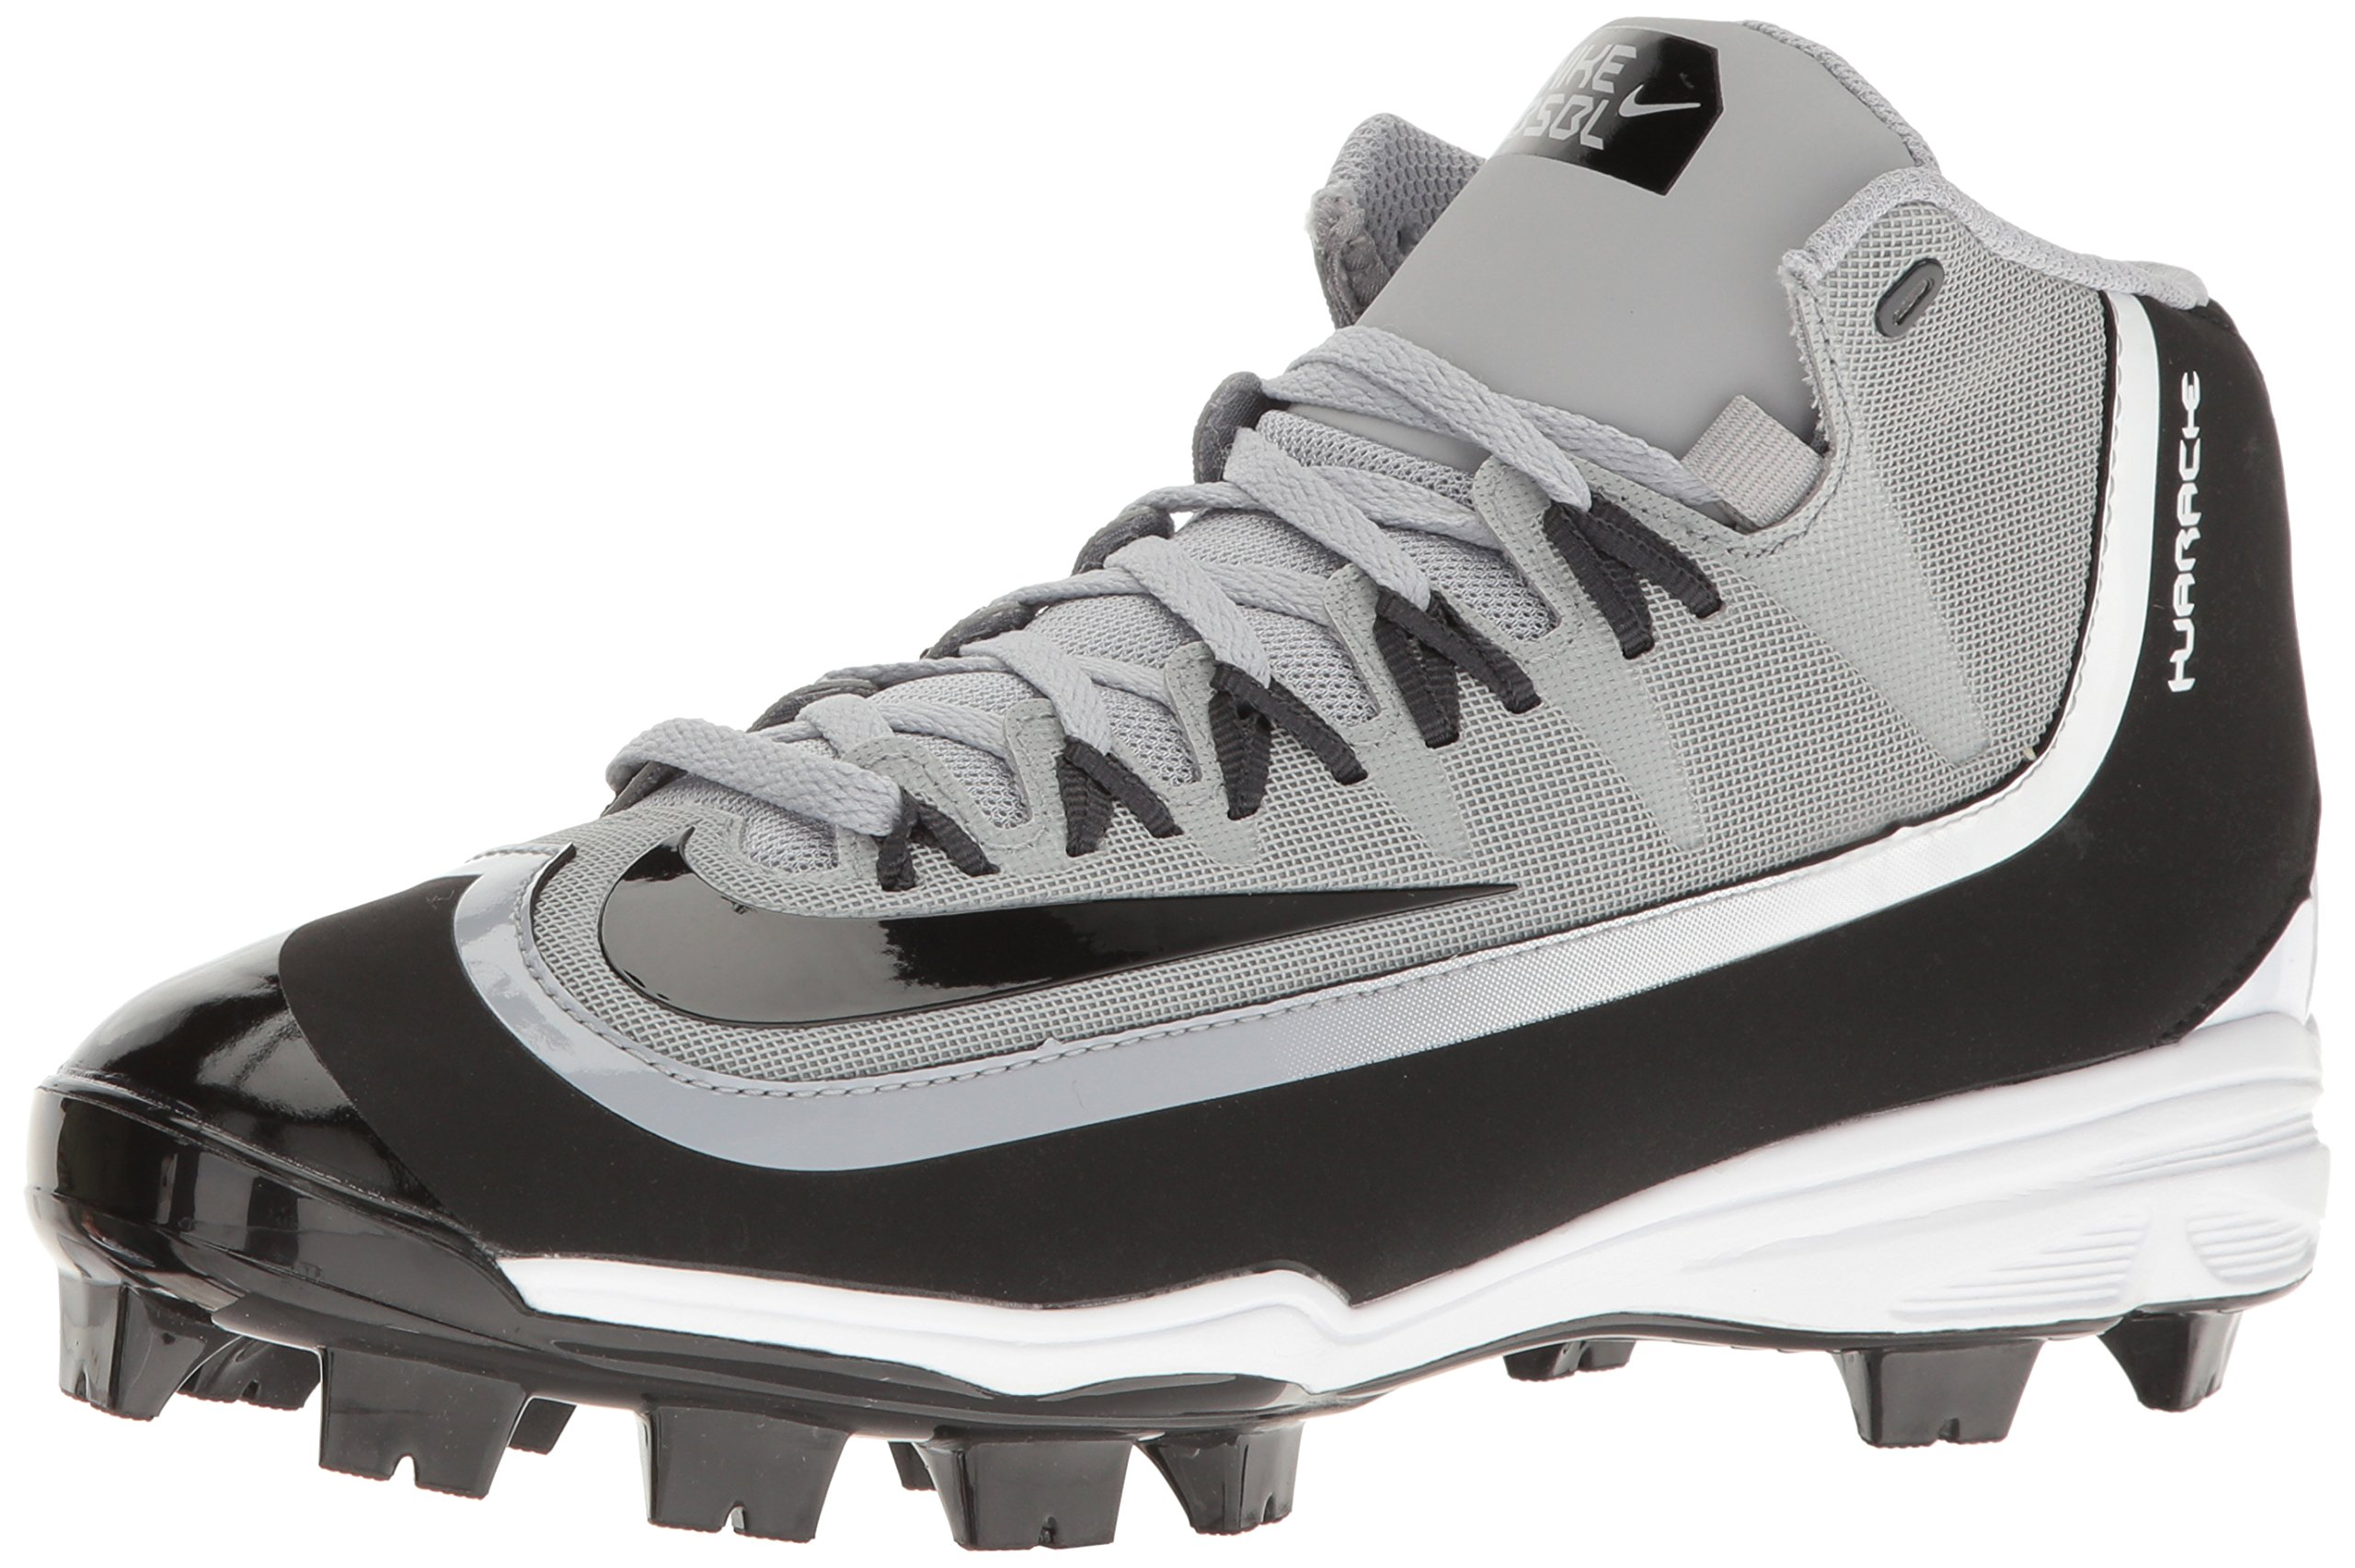 Nike Huarache 2KFilth Men s Pro Baseball Cleat  8.5 D(M) USWolf Grey/Black/Anthracite/White